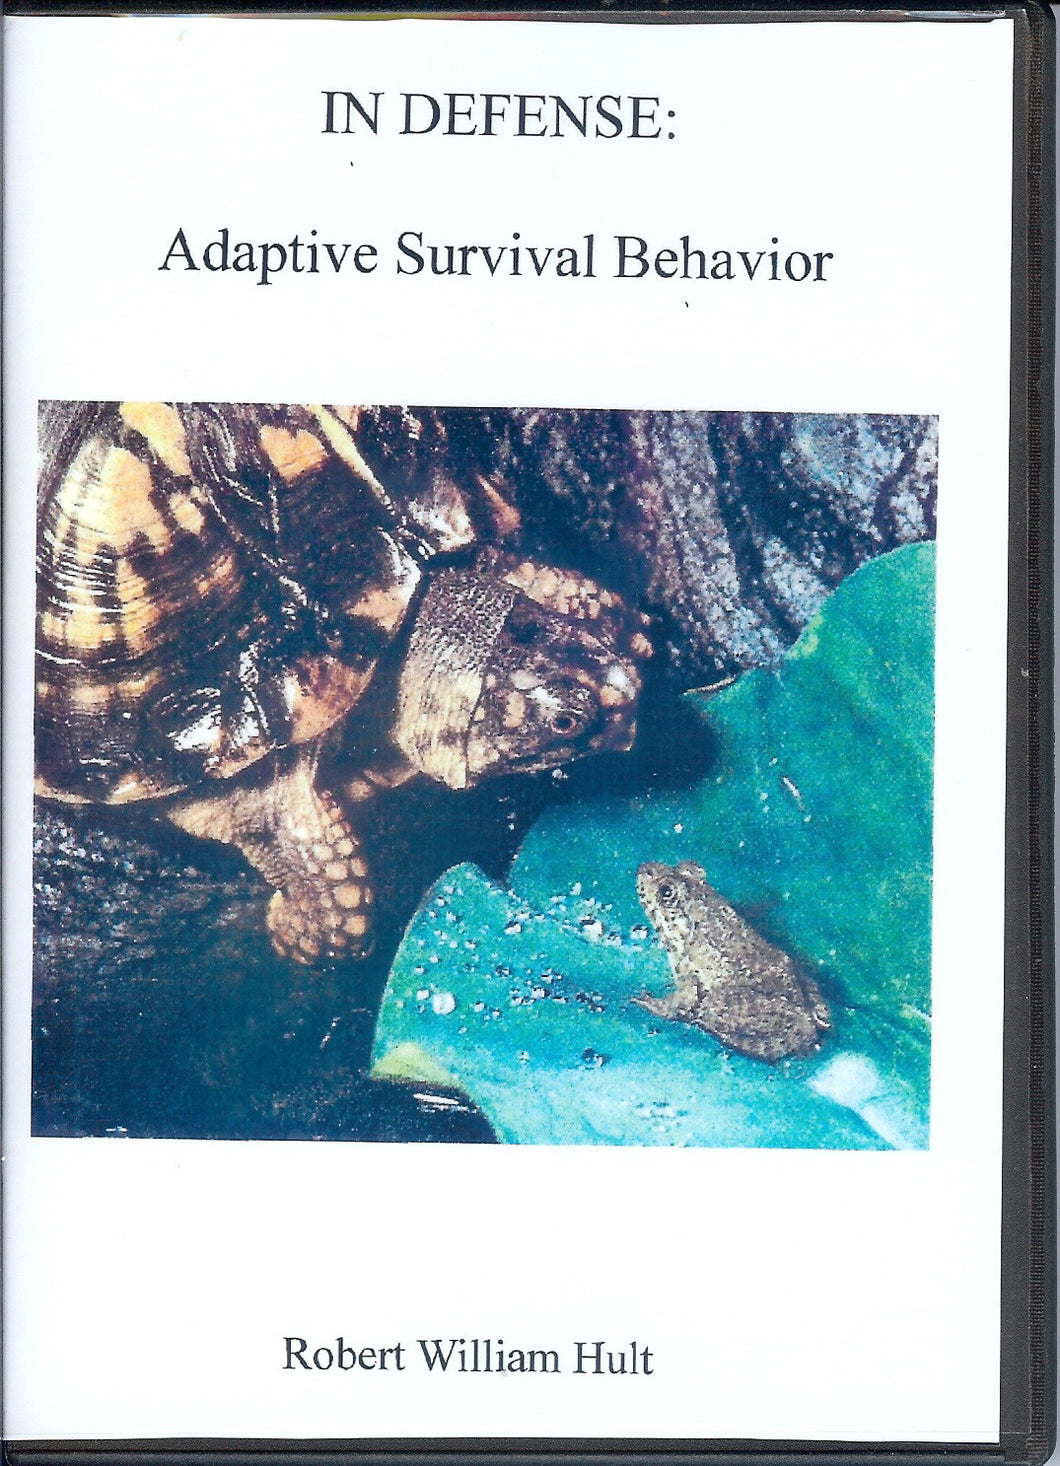 IN DEFENSE: Adaptive Survival Behavior